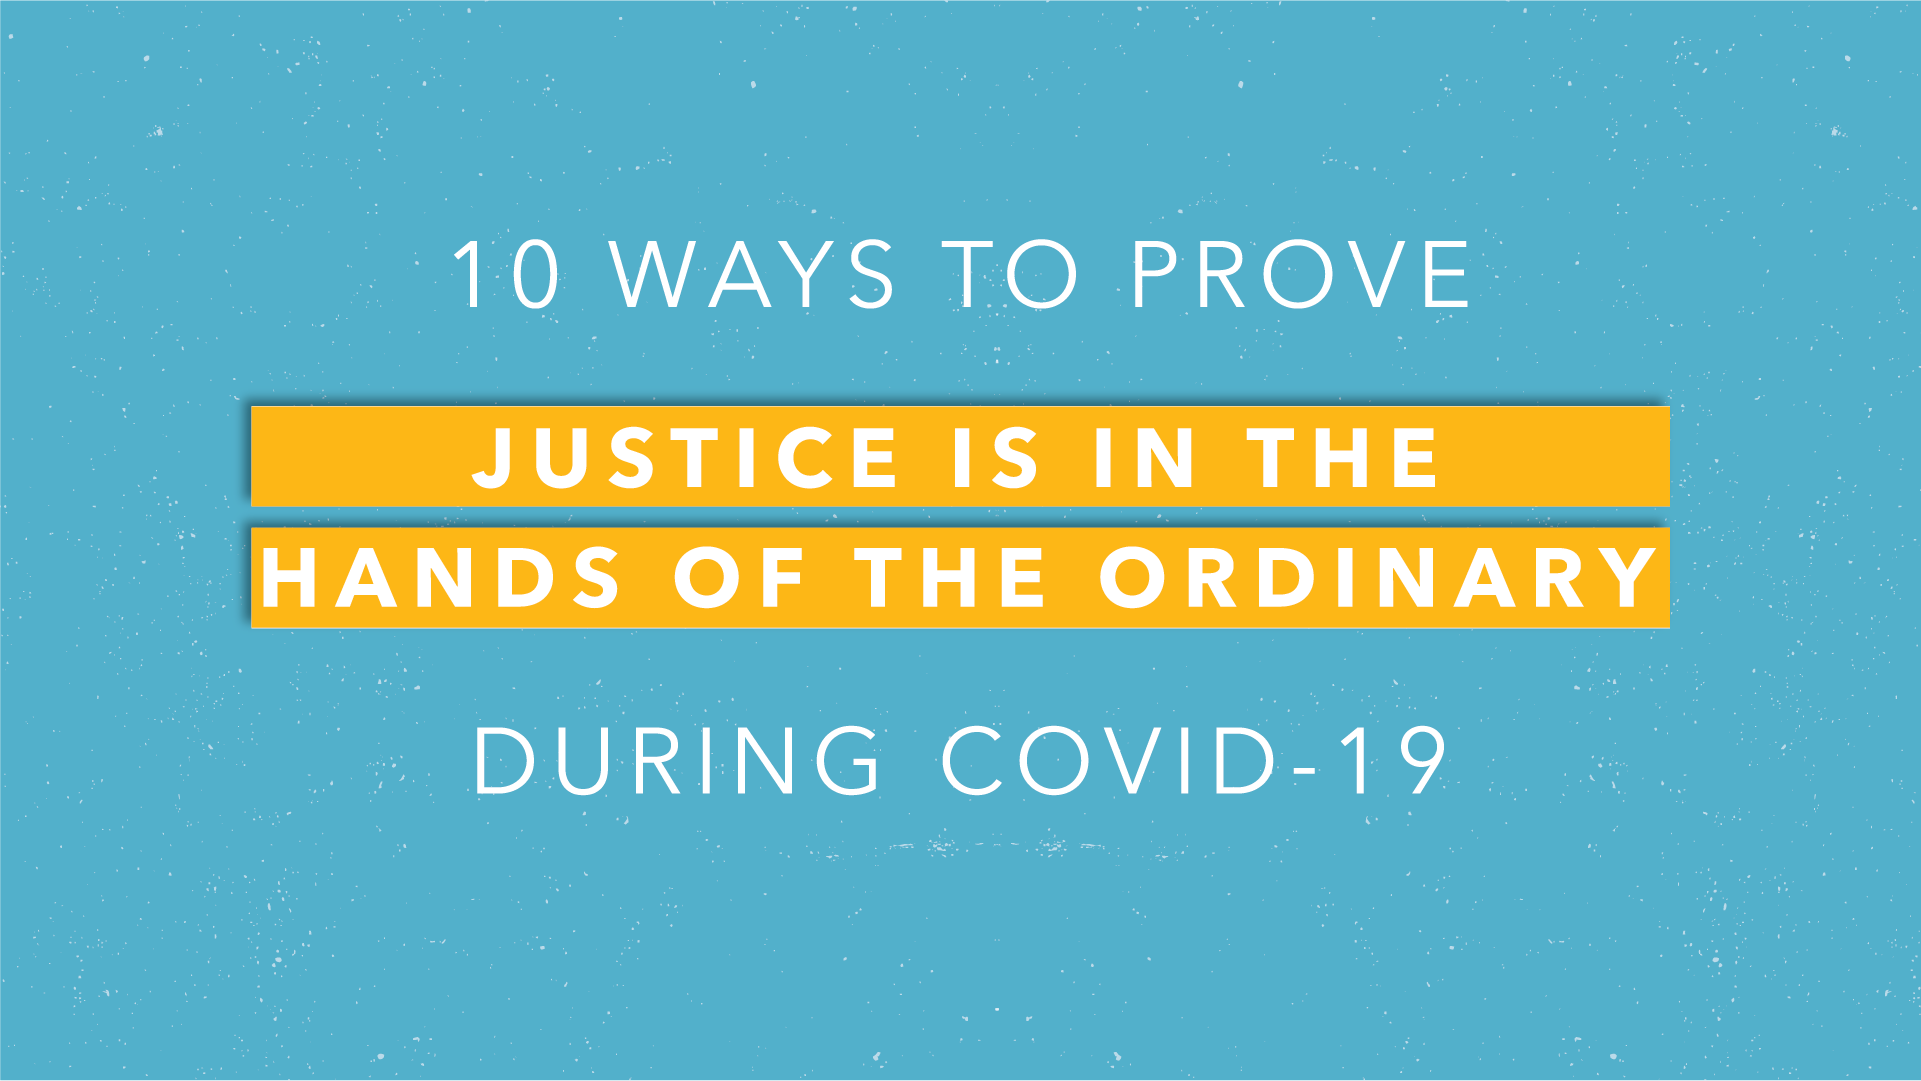 10 ways to prove that justice is in the hands of the ordinary during COVID-19